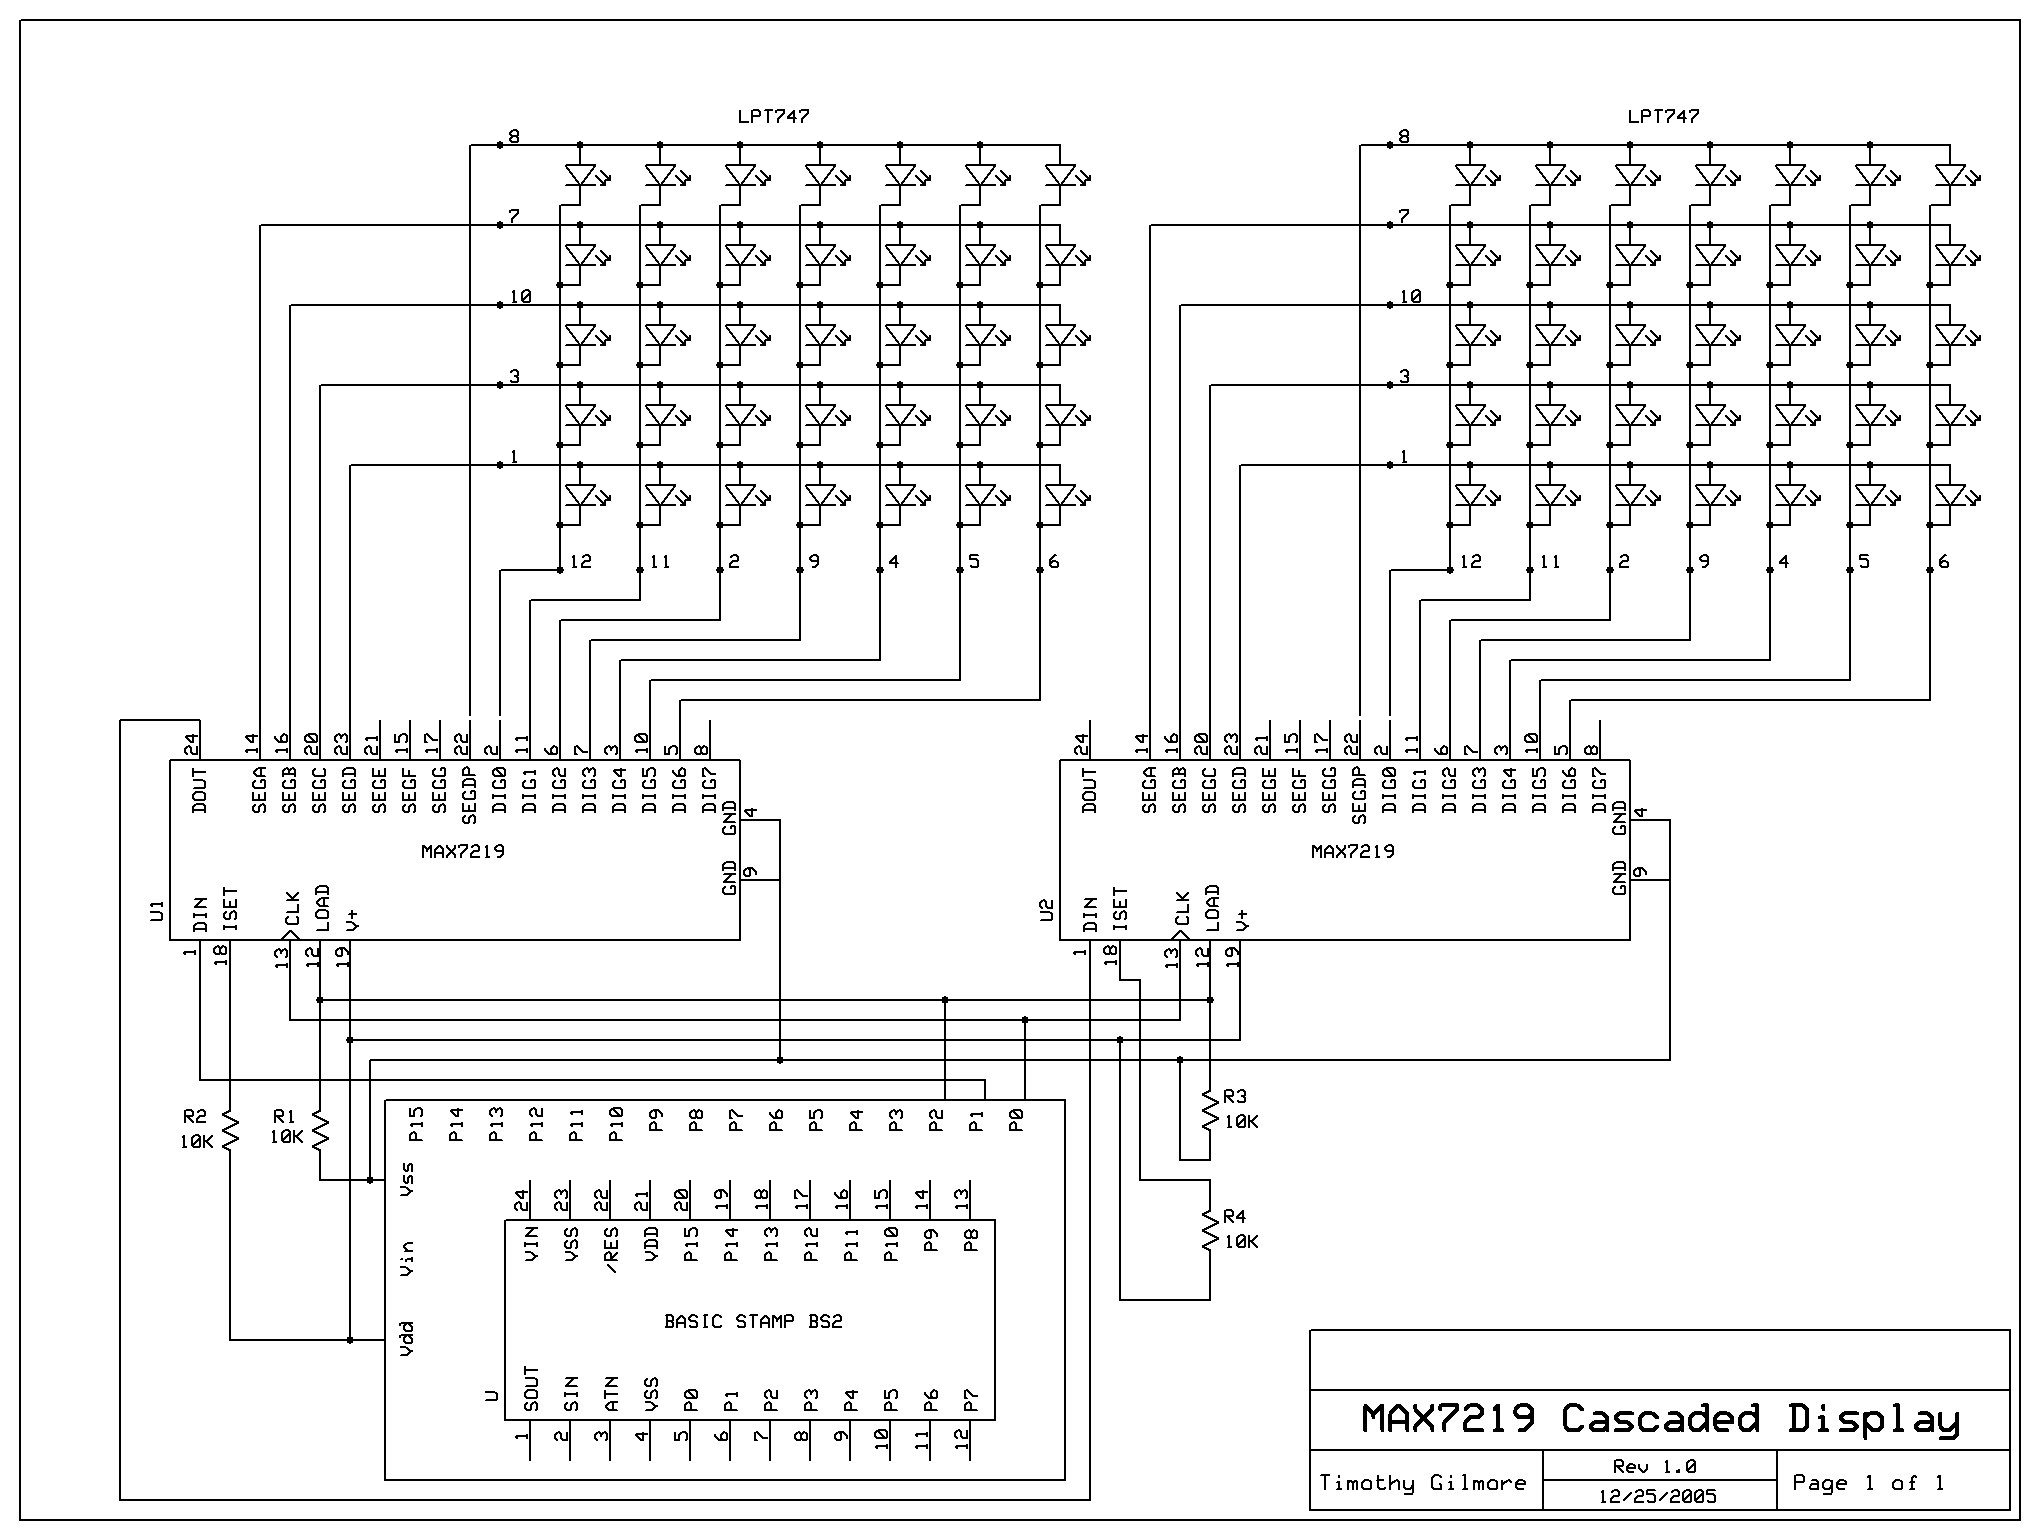 Help needed to cascade 2 or more MAX 7219 LED driver ICs